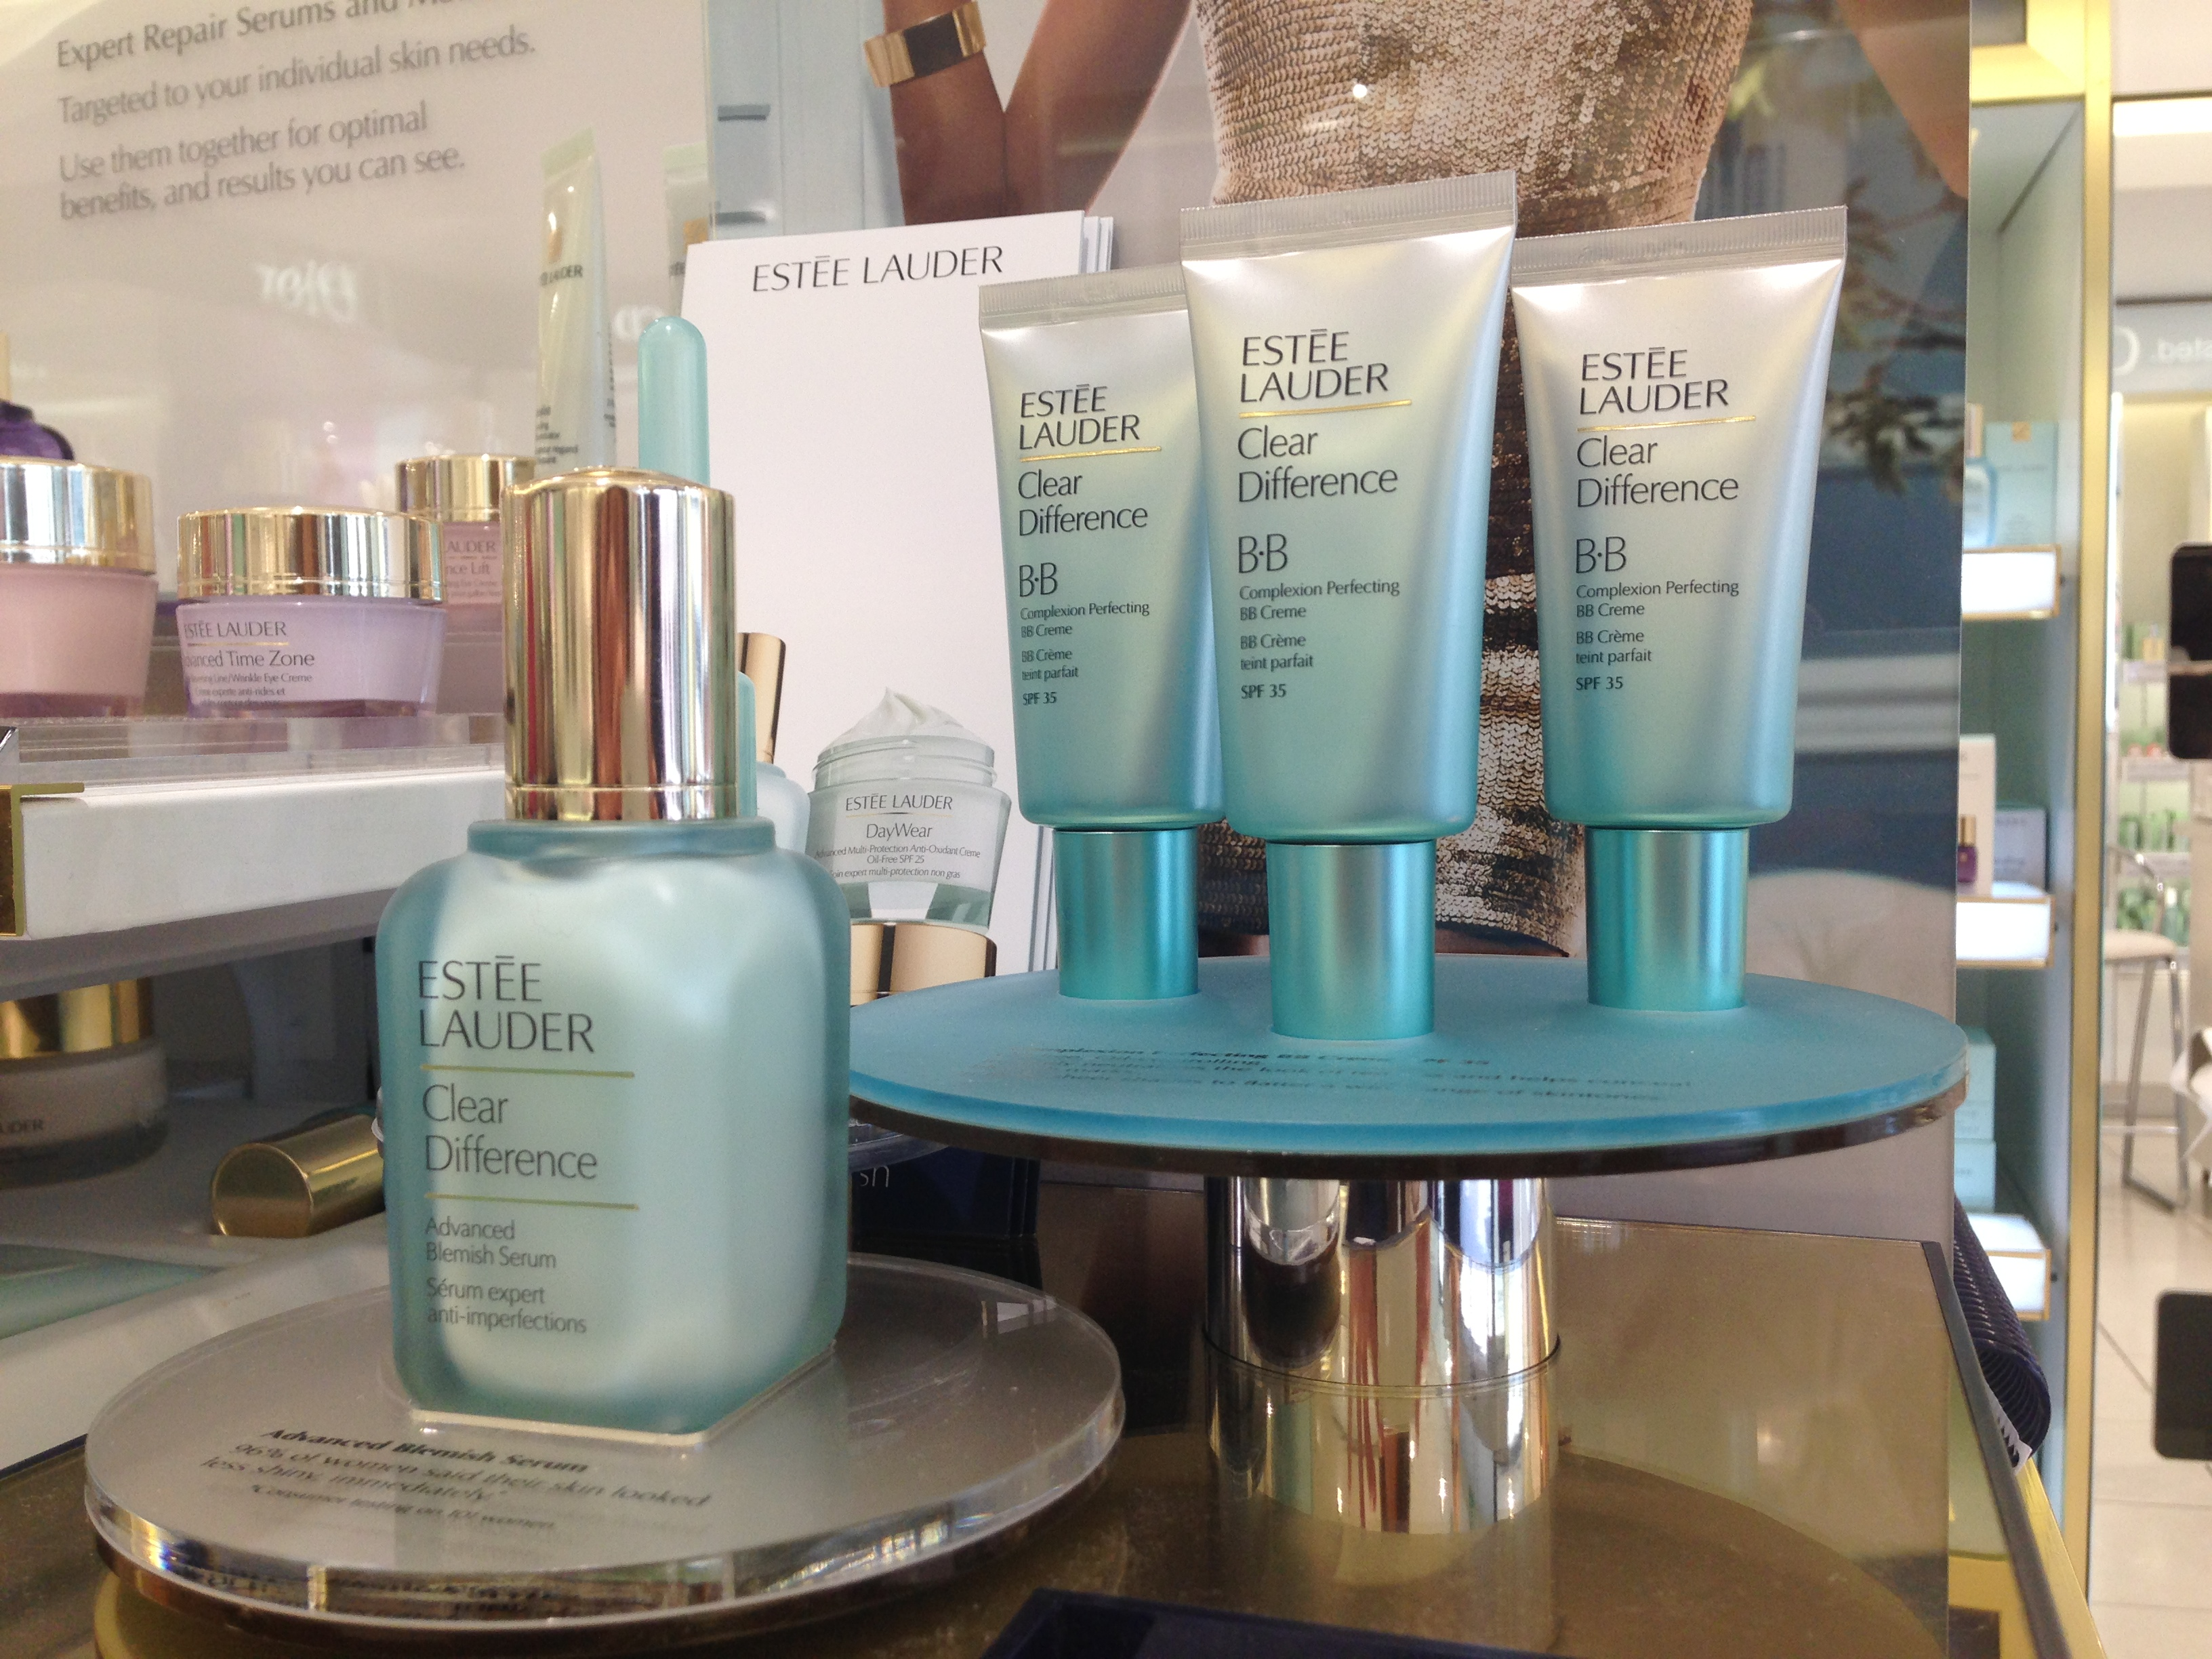 Guest blogger Fran reviews Estee Lauder's Clear Difference range